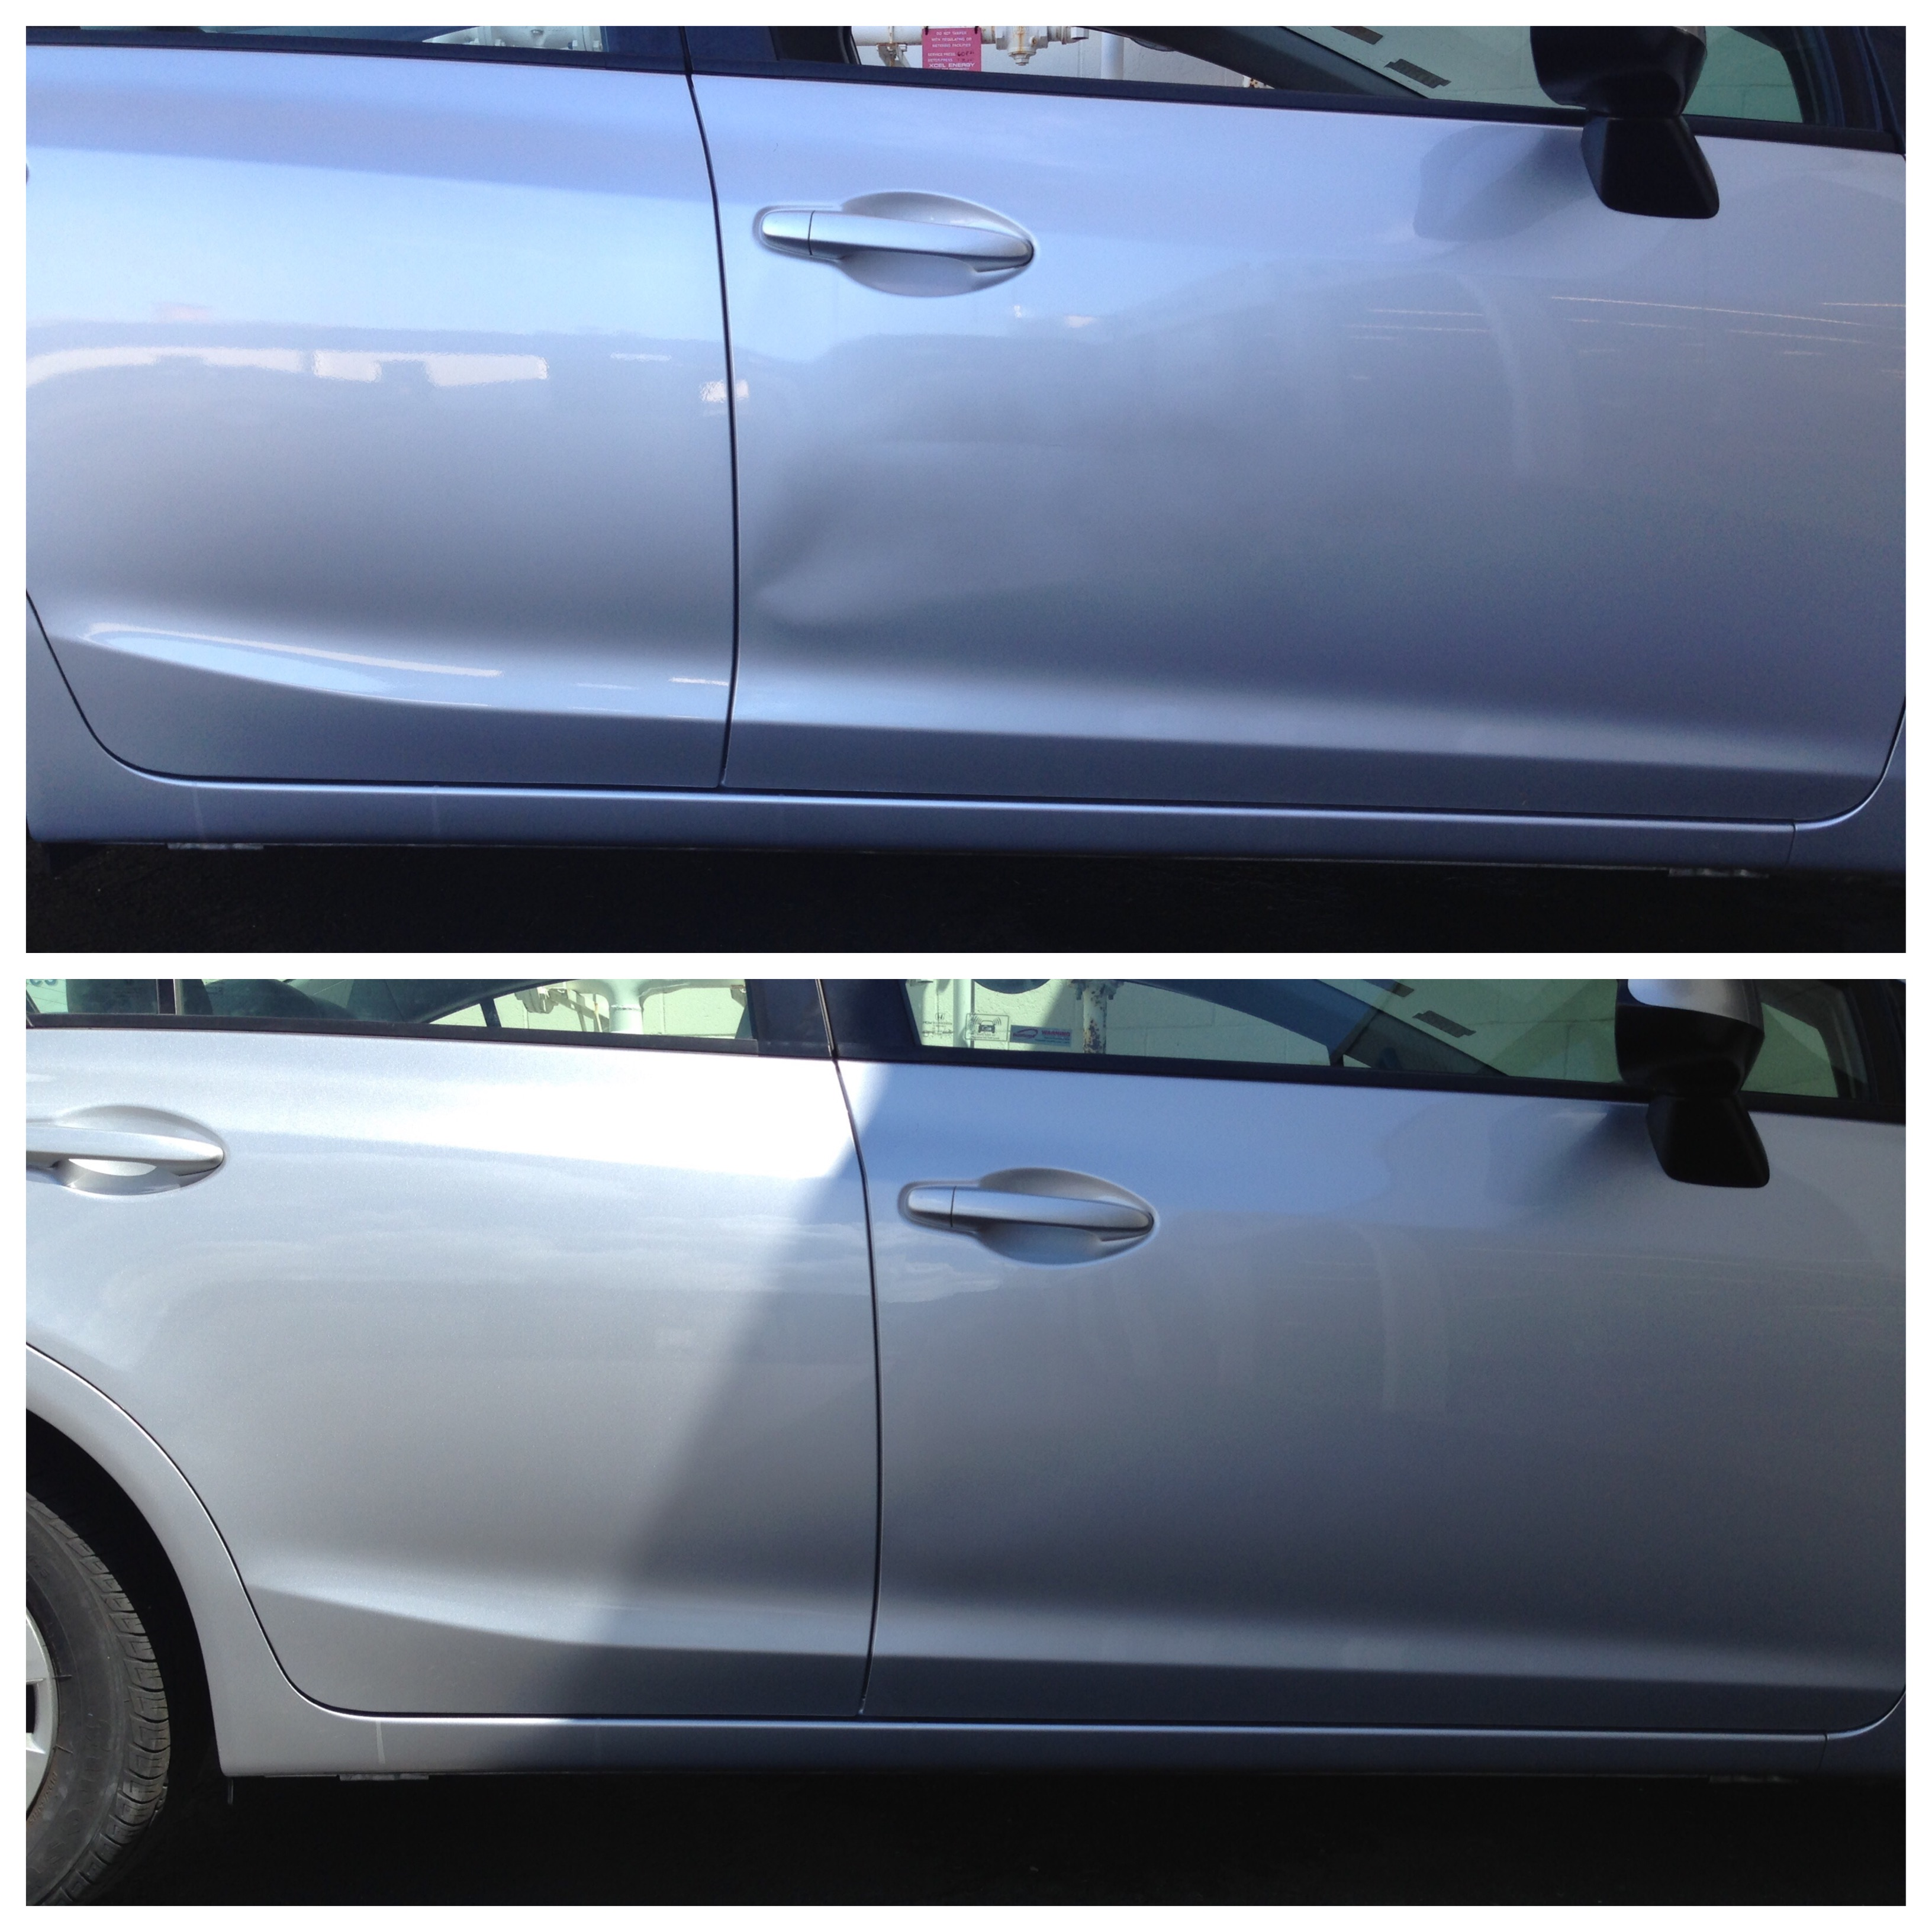 are you thinking of a few door dings youu0027d like to have removed has your vehicle suffered from hail damage that needs to be repaired